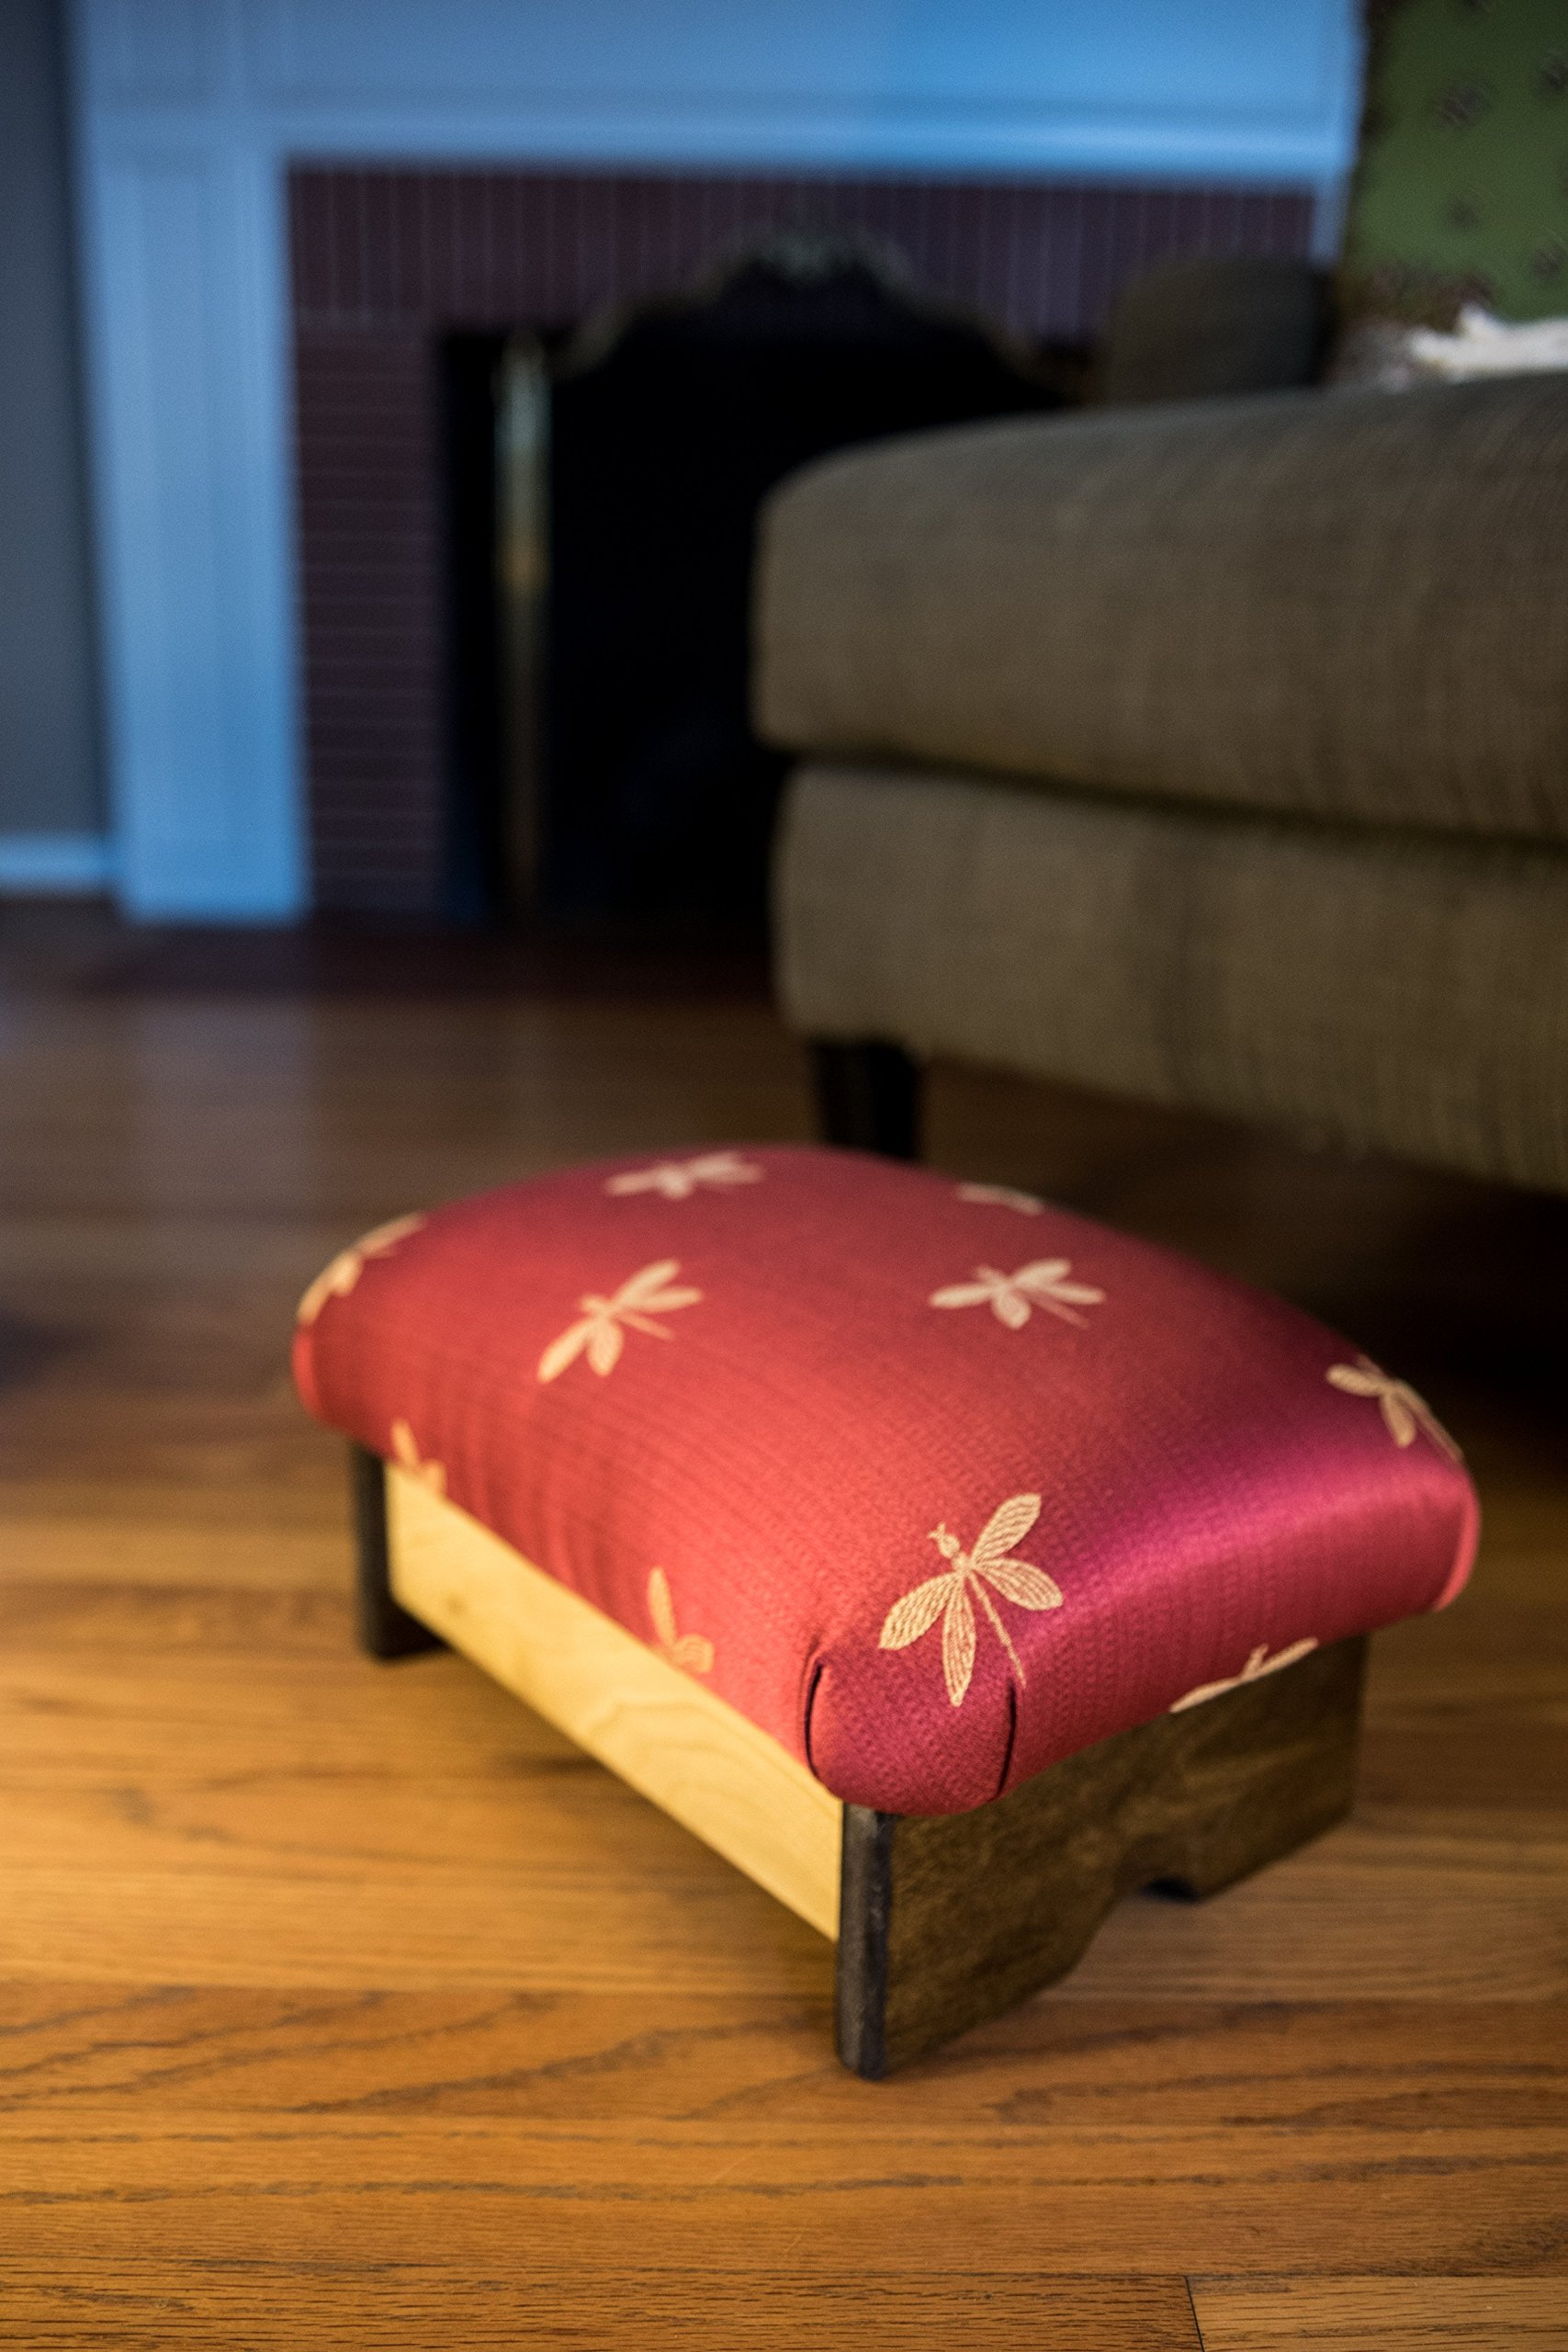 KR Ideas Padded Foot Stool, Dragonfly (Made in the USA) (7'' Tall - Chic Stain)